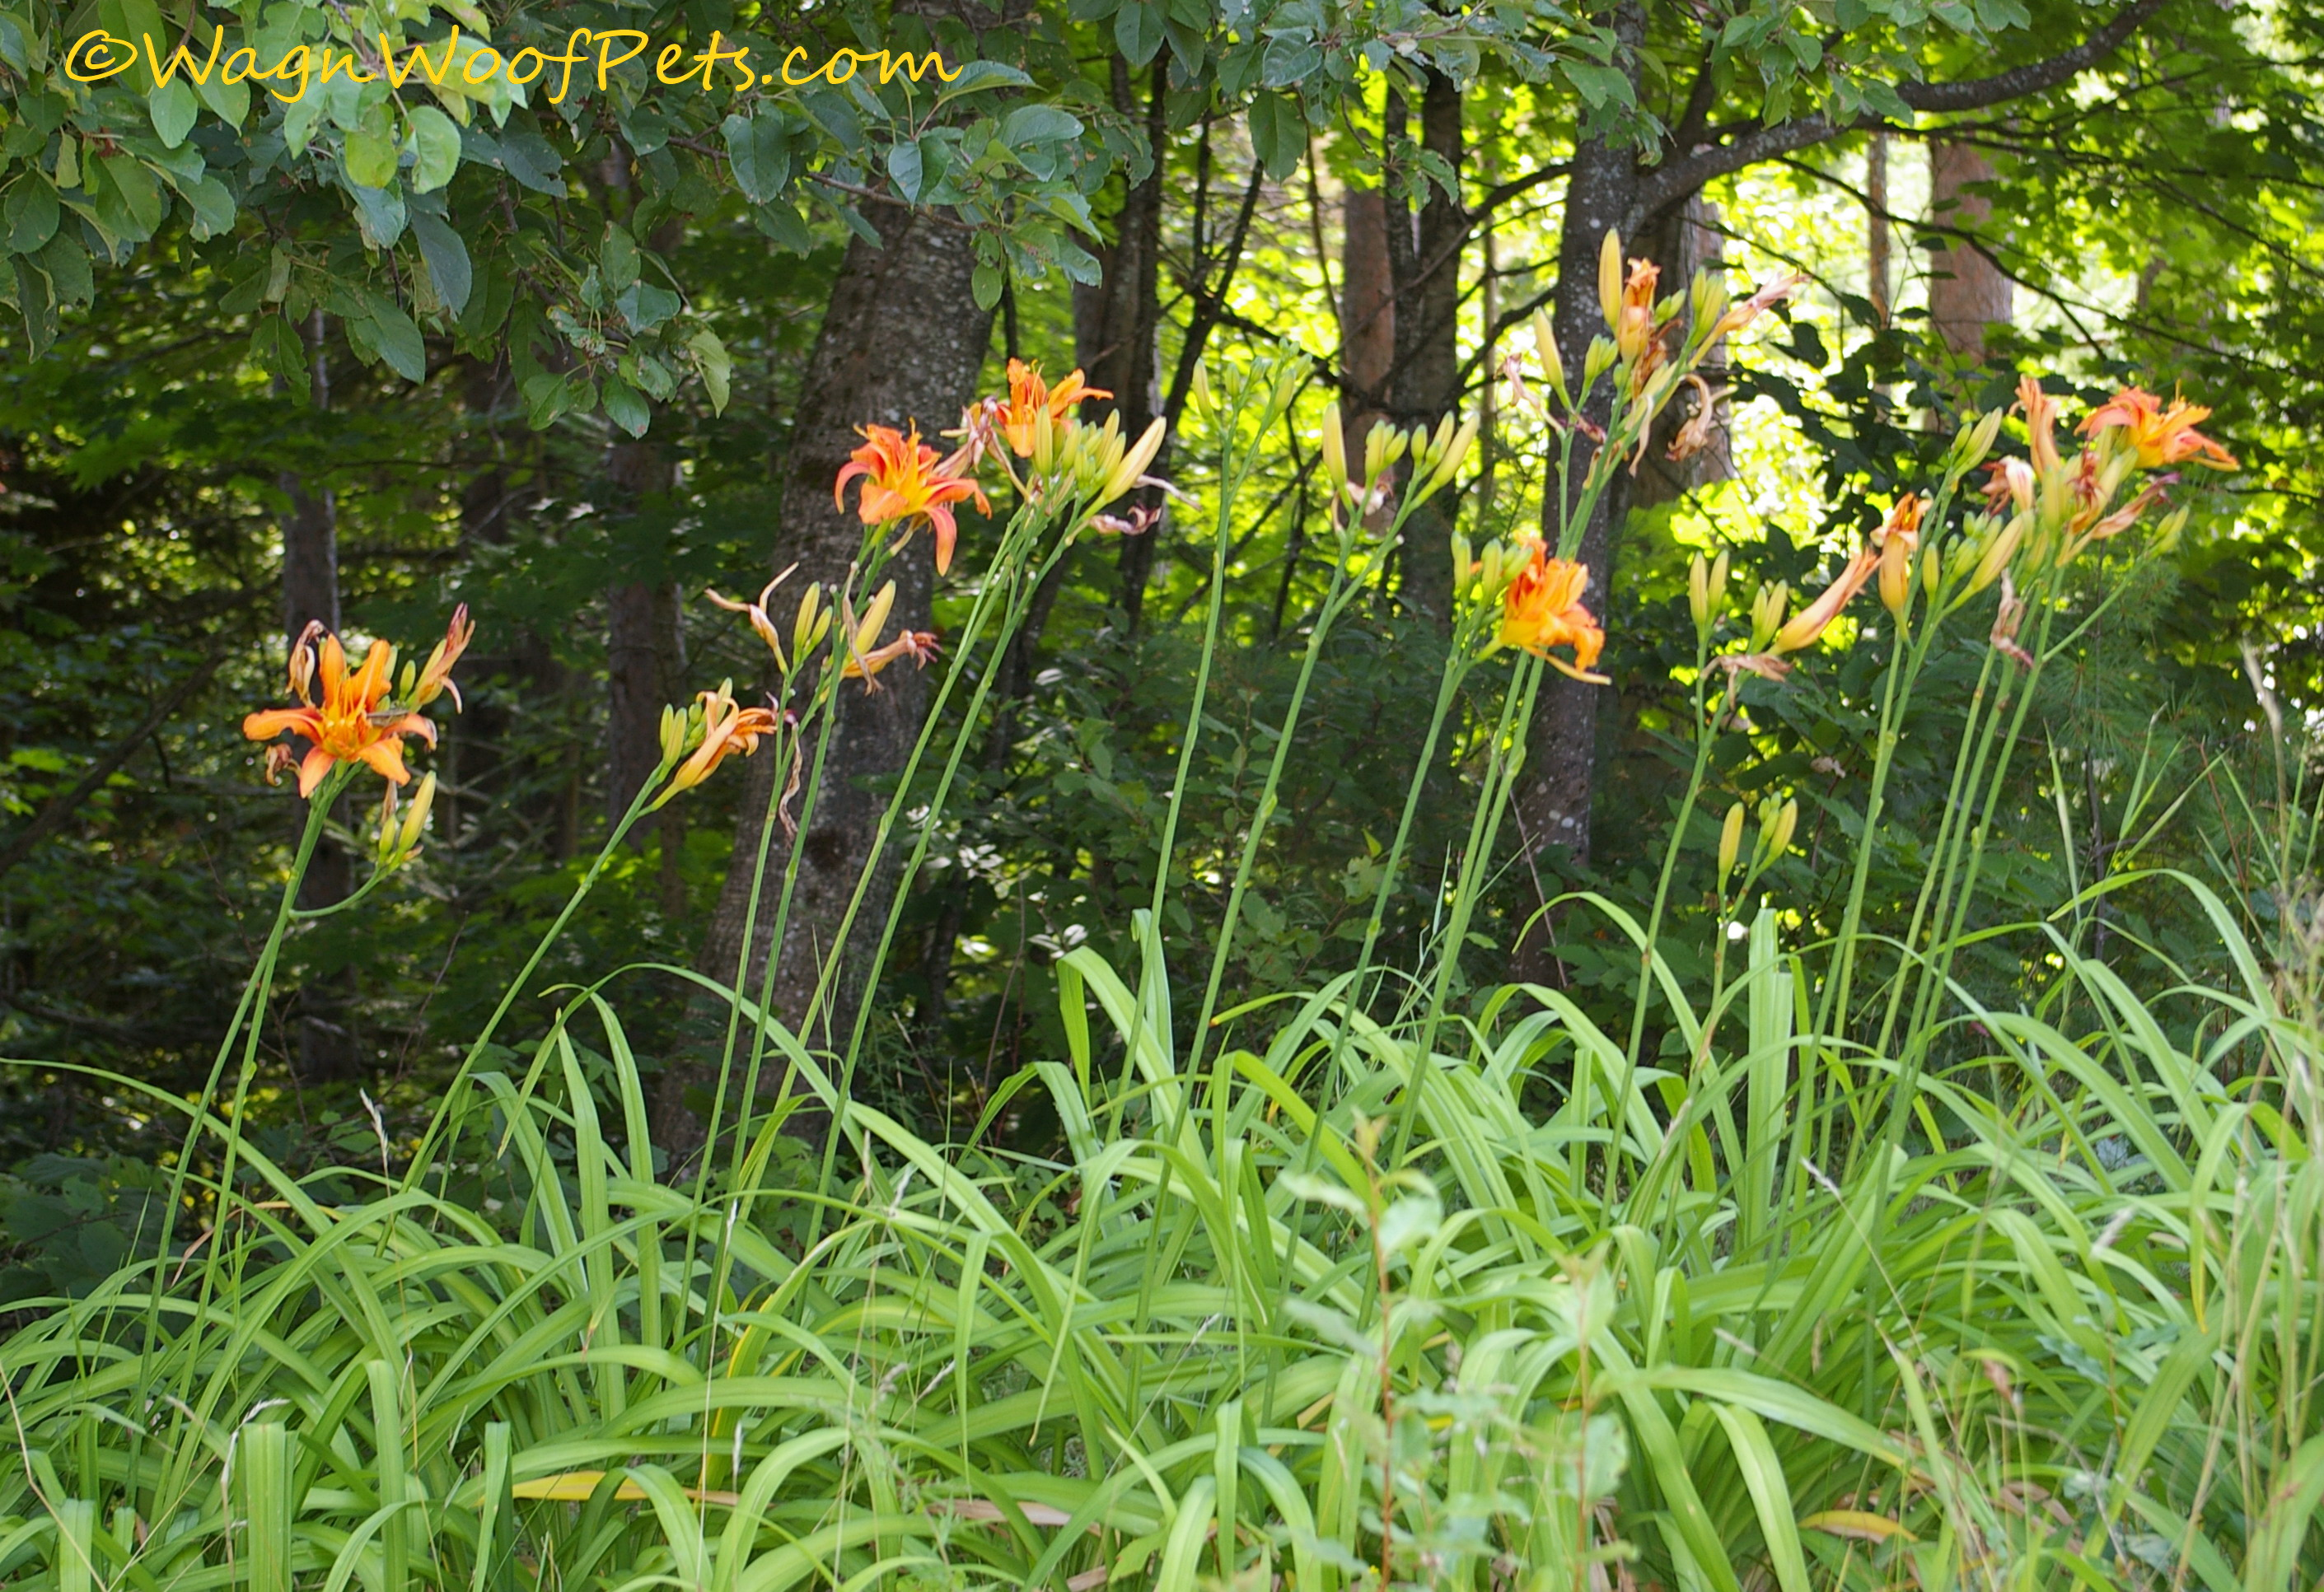 For some reason, they don't like the Daylilies - I don't know why.